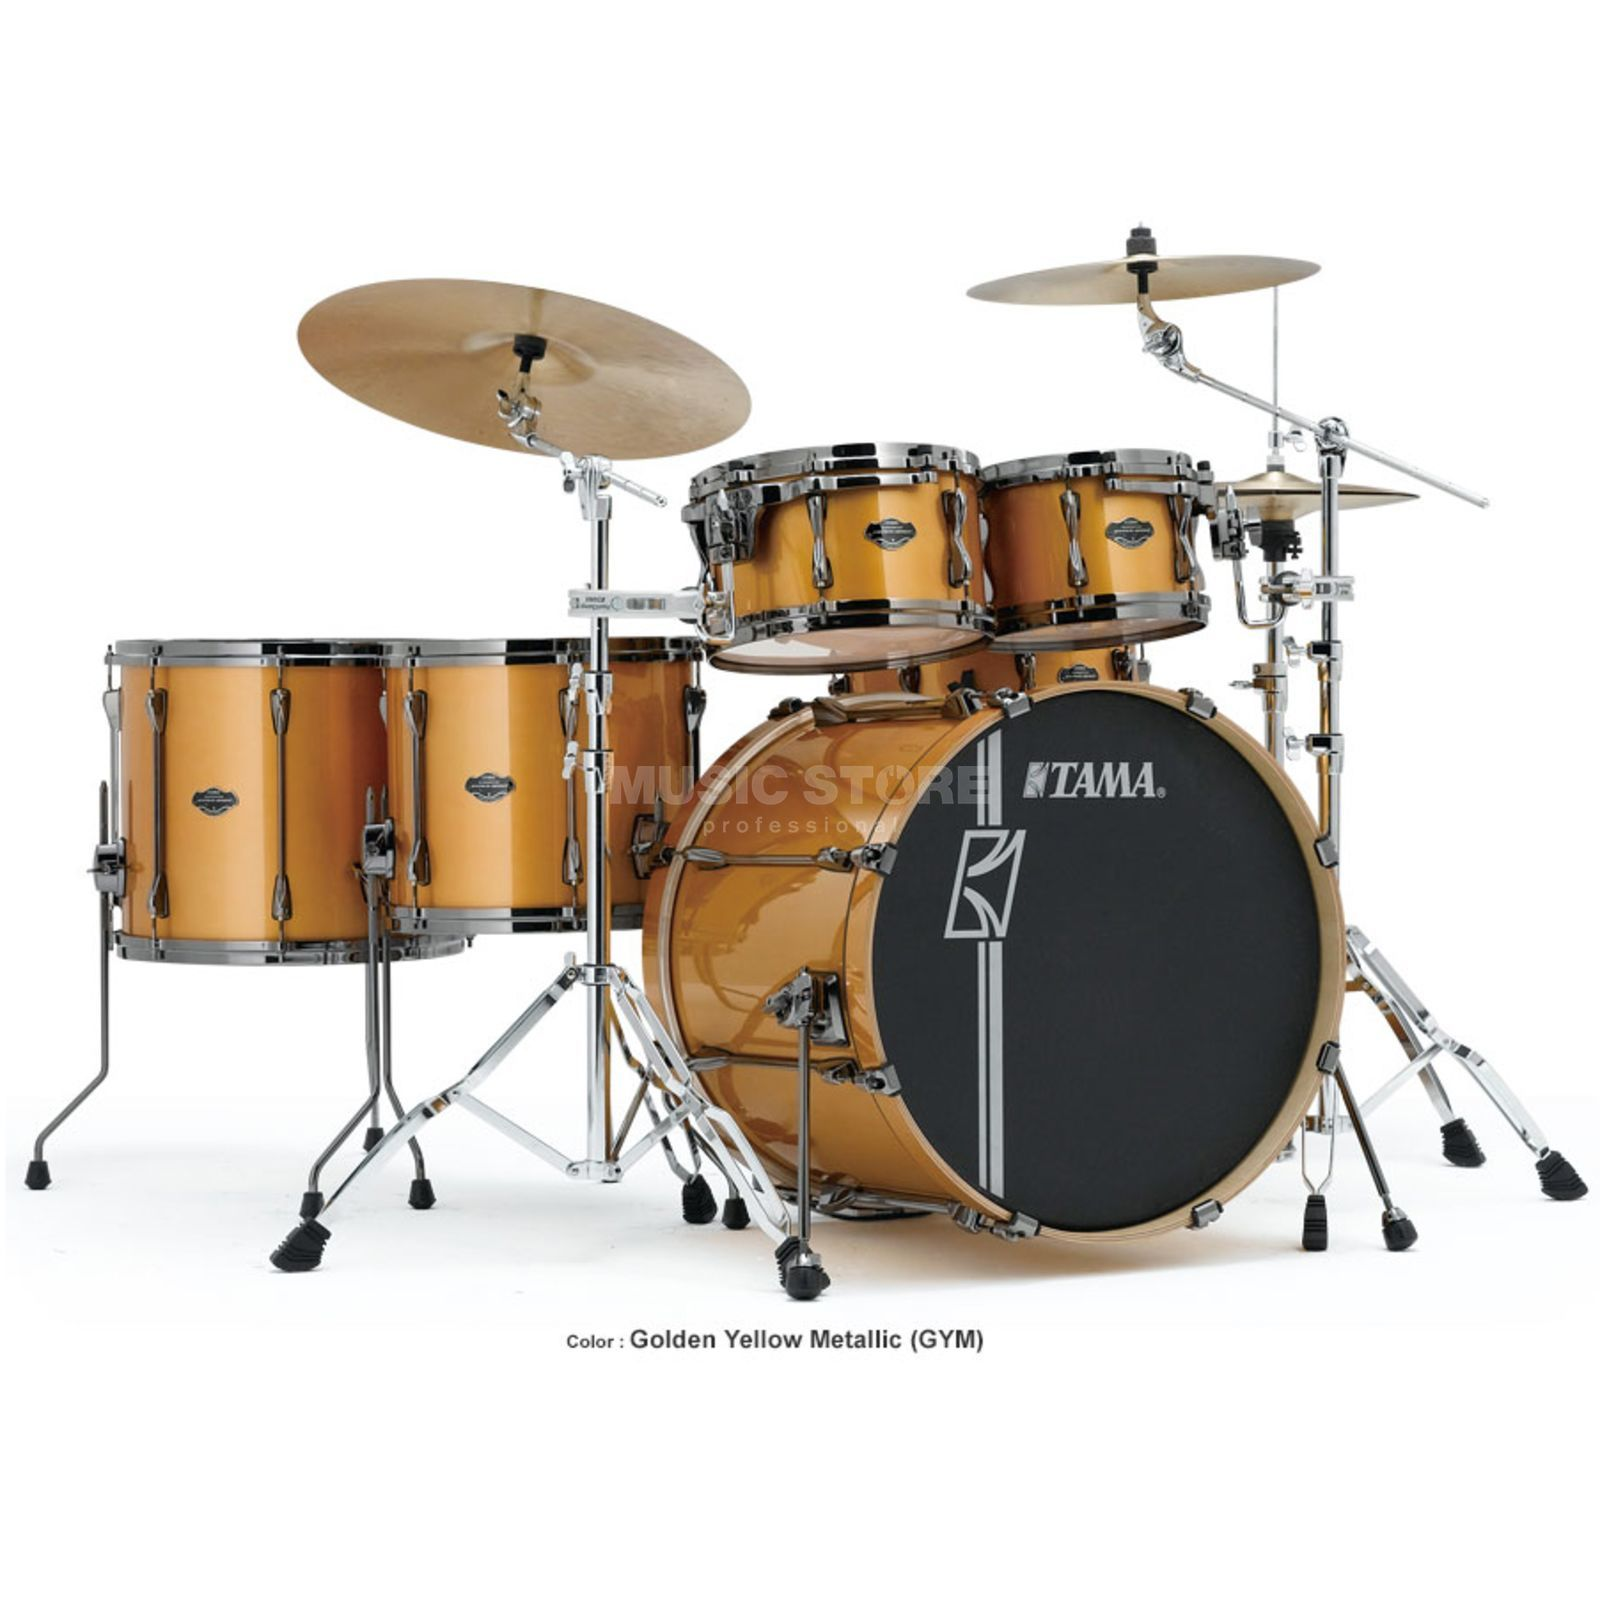 Tama Superstar HD Maple ML62HZBN, Golden Yellow Metallic #GYM Produktbild